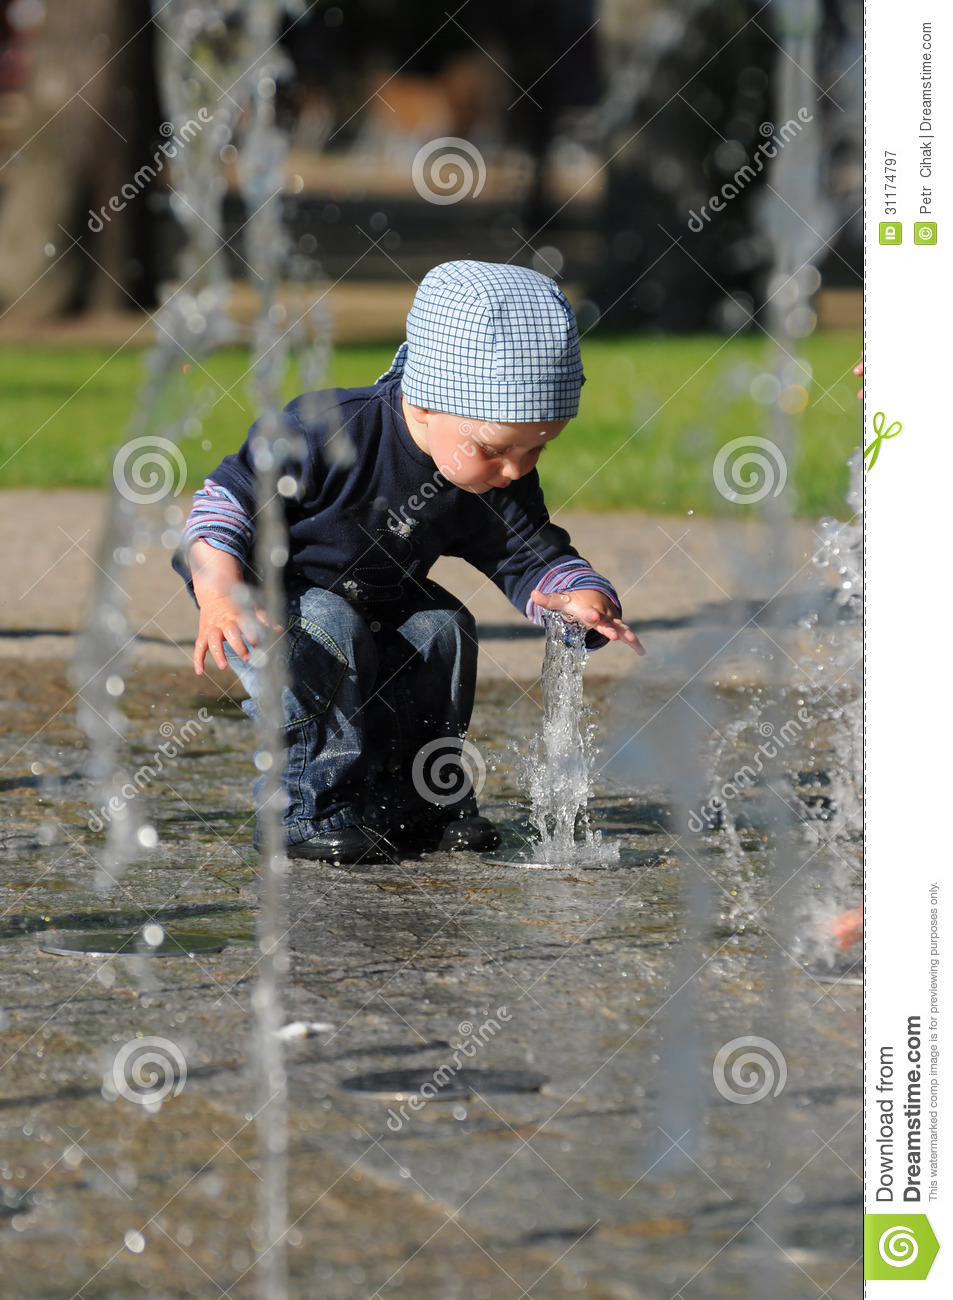 Little child playing in water park having fun